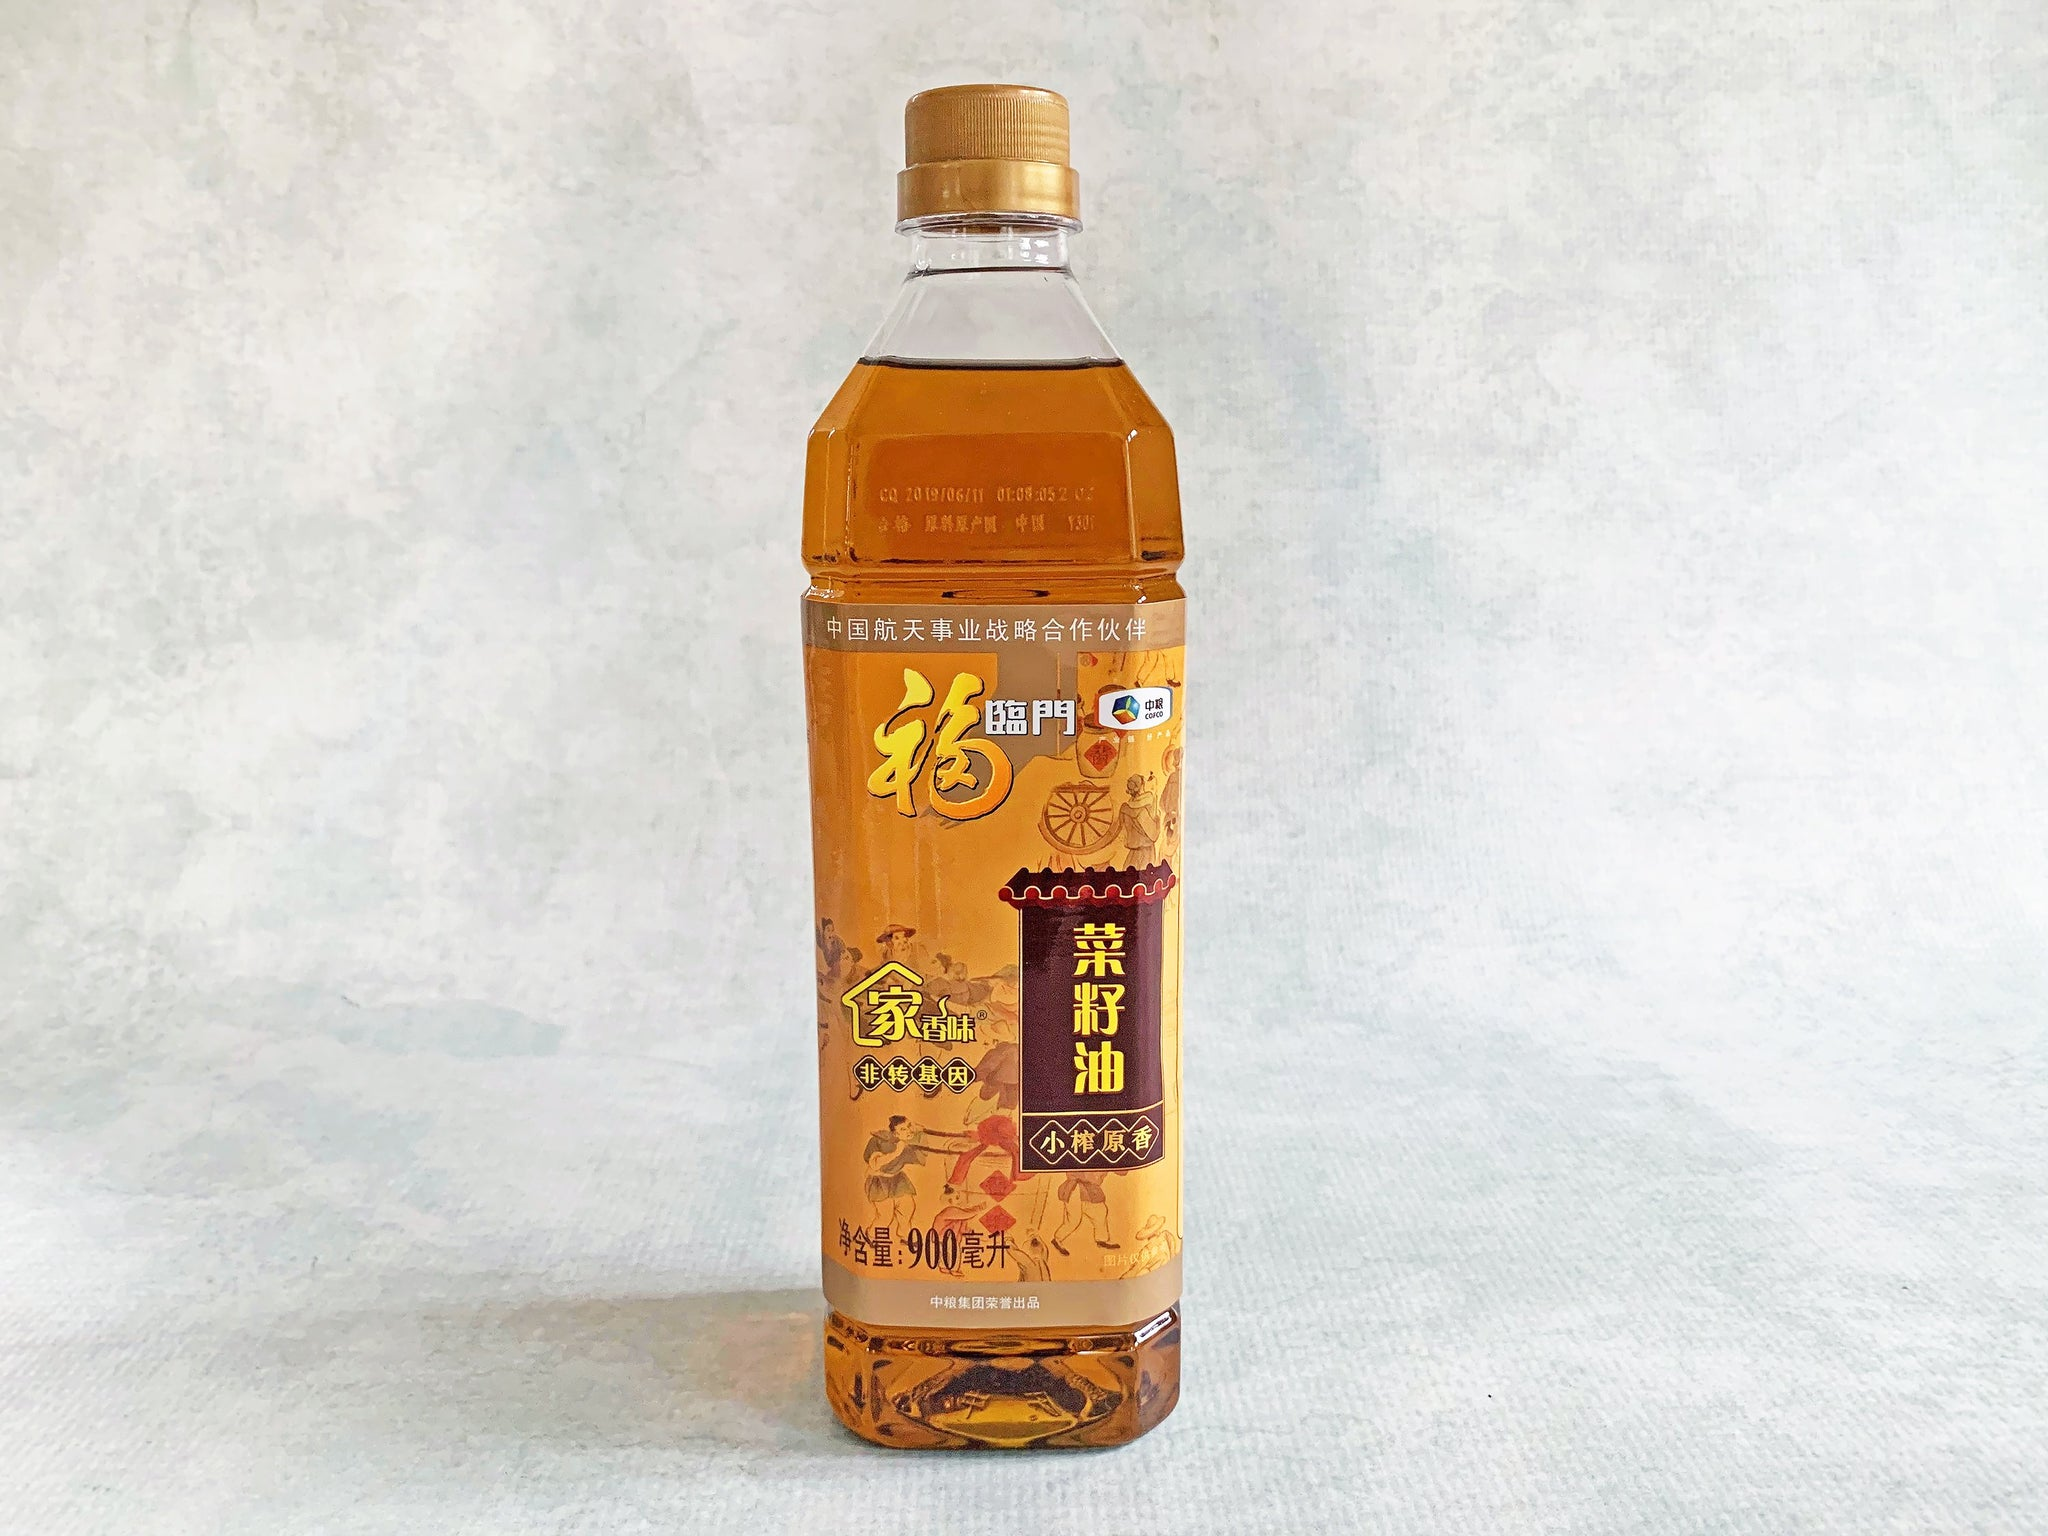 Roasted Rapeseed Oil (Caizi You, 菜籽油)